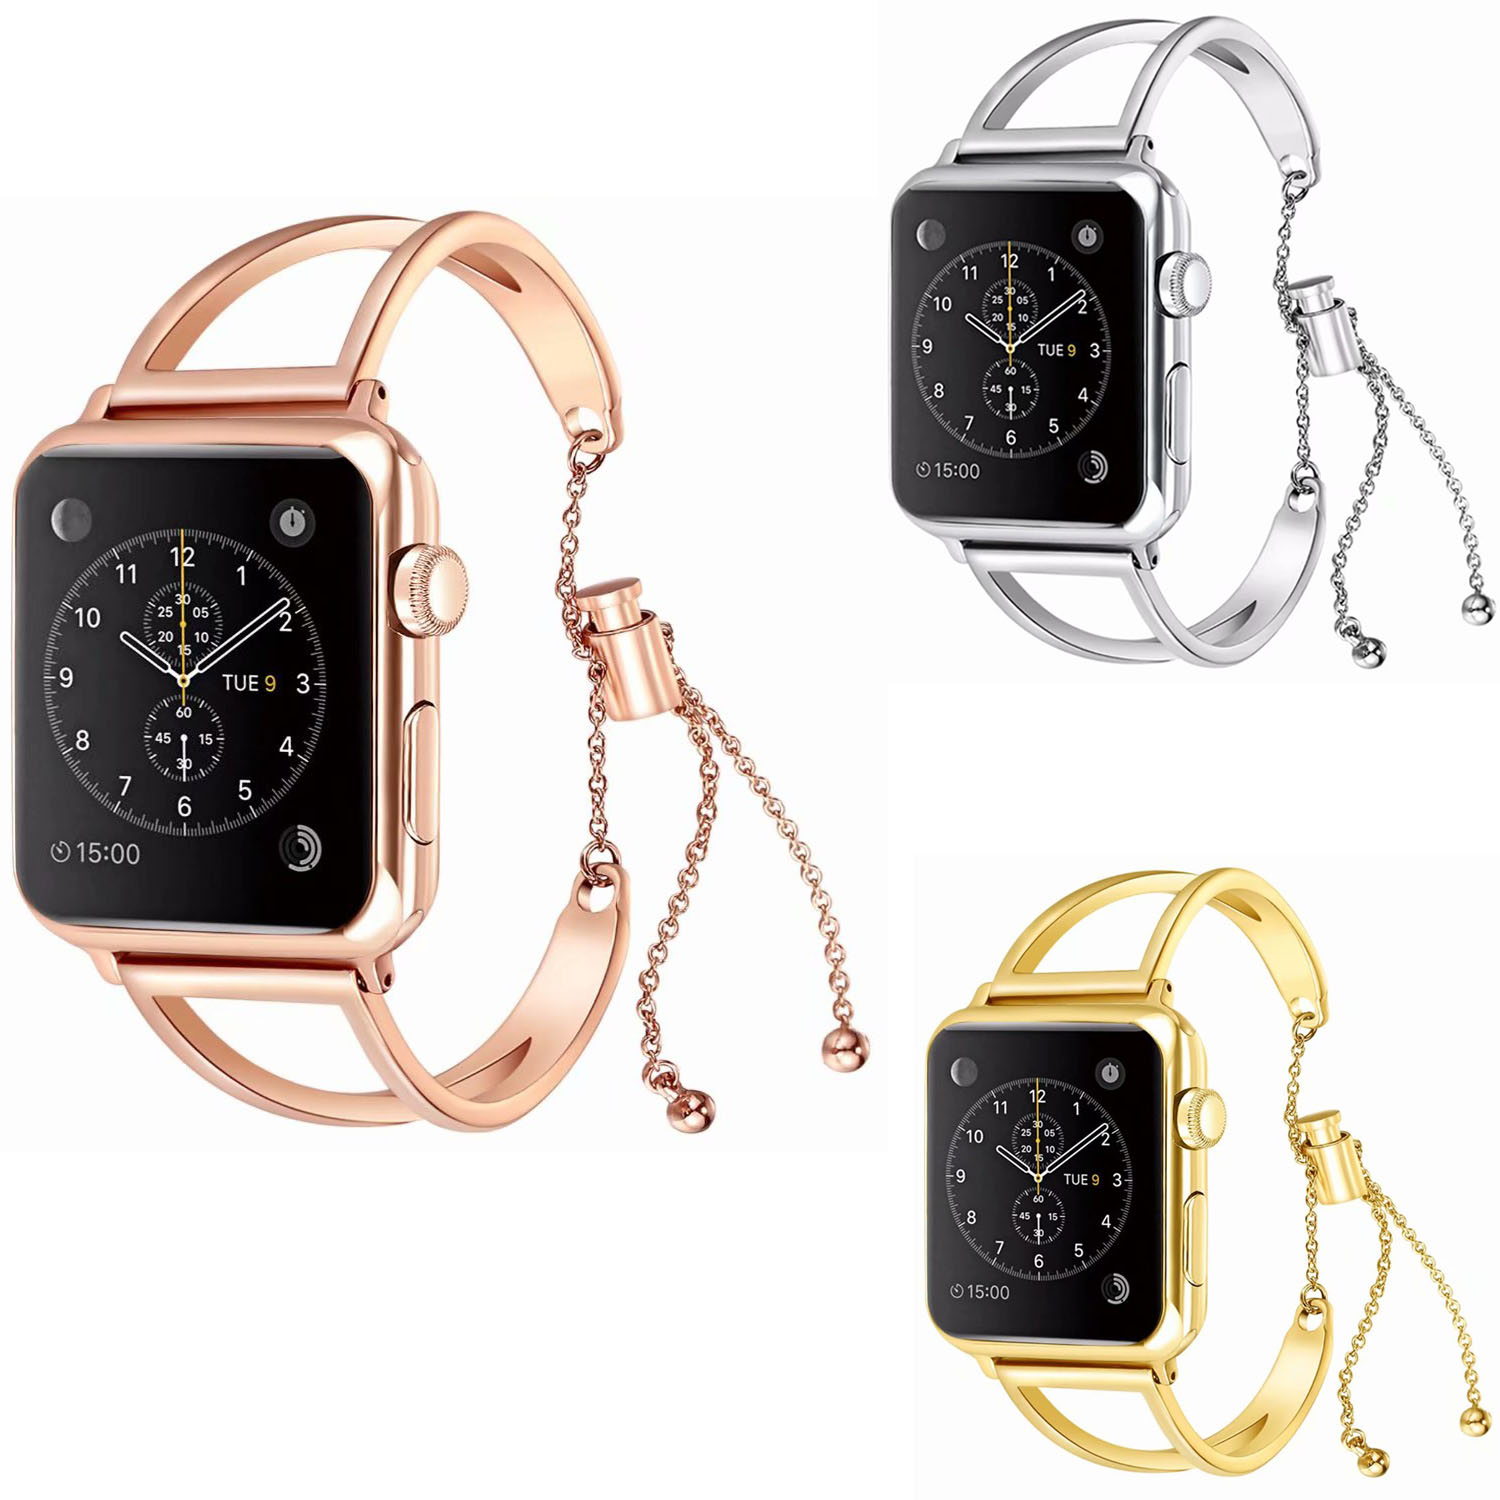 Women Watch Bracelet for Apple Watch Bands 38mm 42mm Adjustable Stainless Steel Strap with Pendant for iWatch Series 3 2 1 42mm 38mm for apple watch s3 series 3